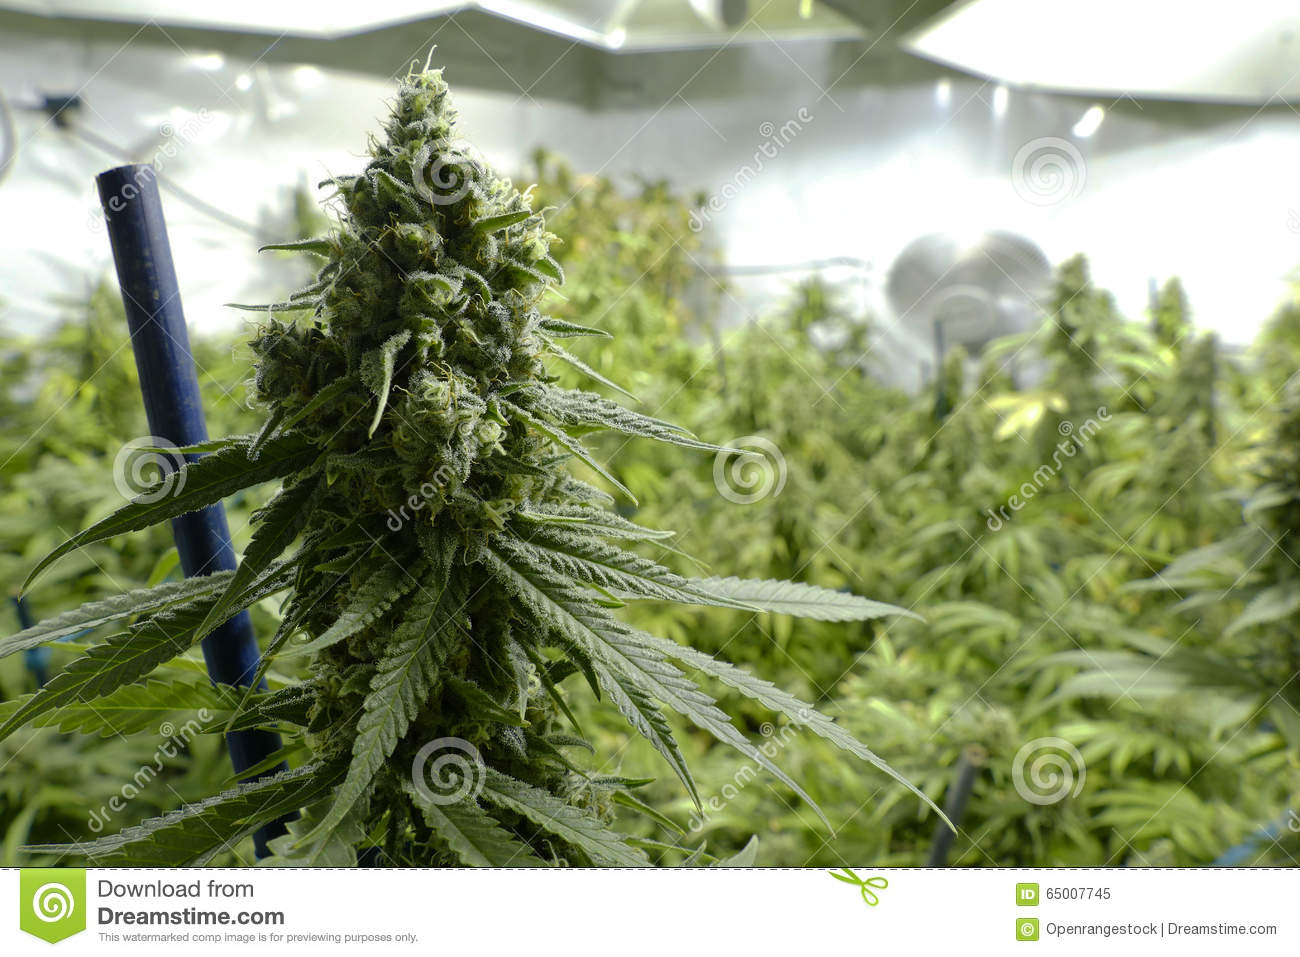 big marijuana bud on indoor plant under lights at cannabis